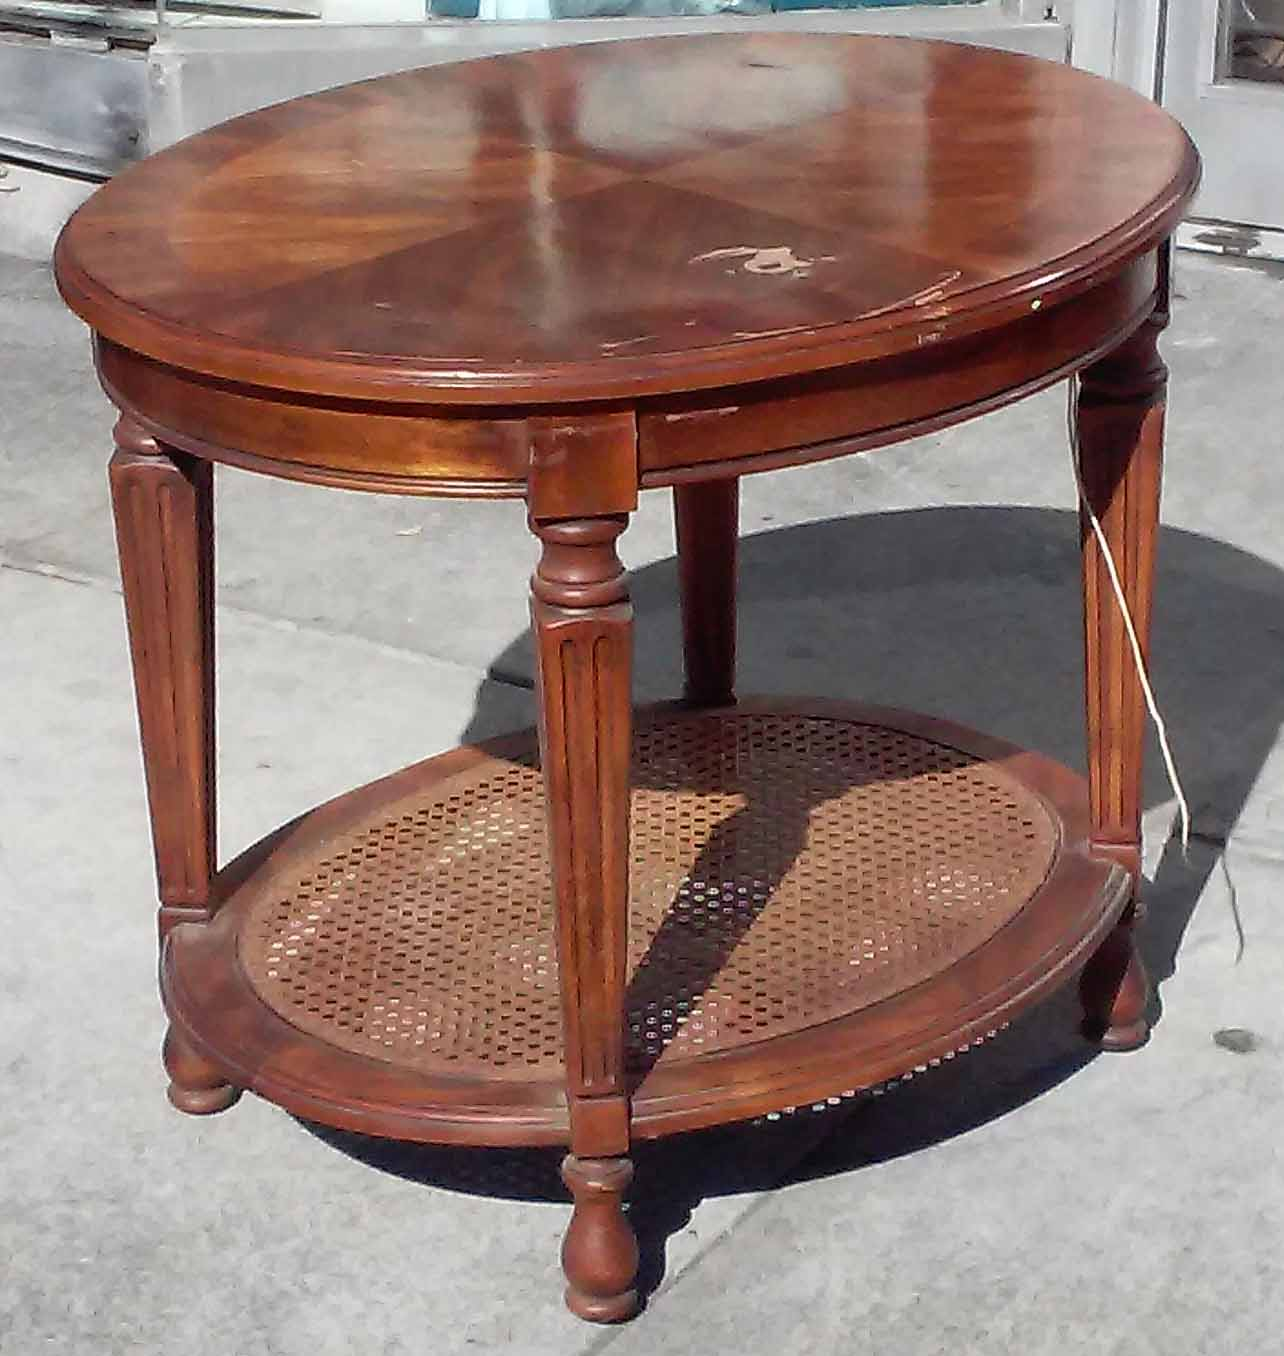 Uhuru Furniture Collectibles Sold Oval Lamp Table 35